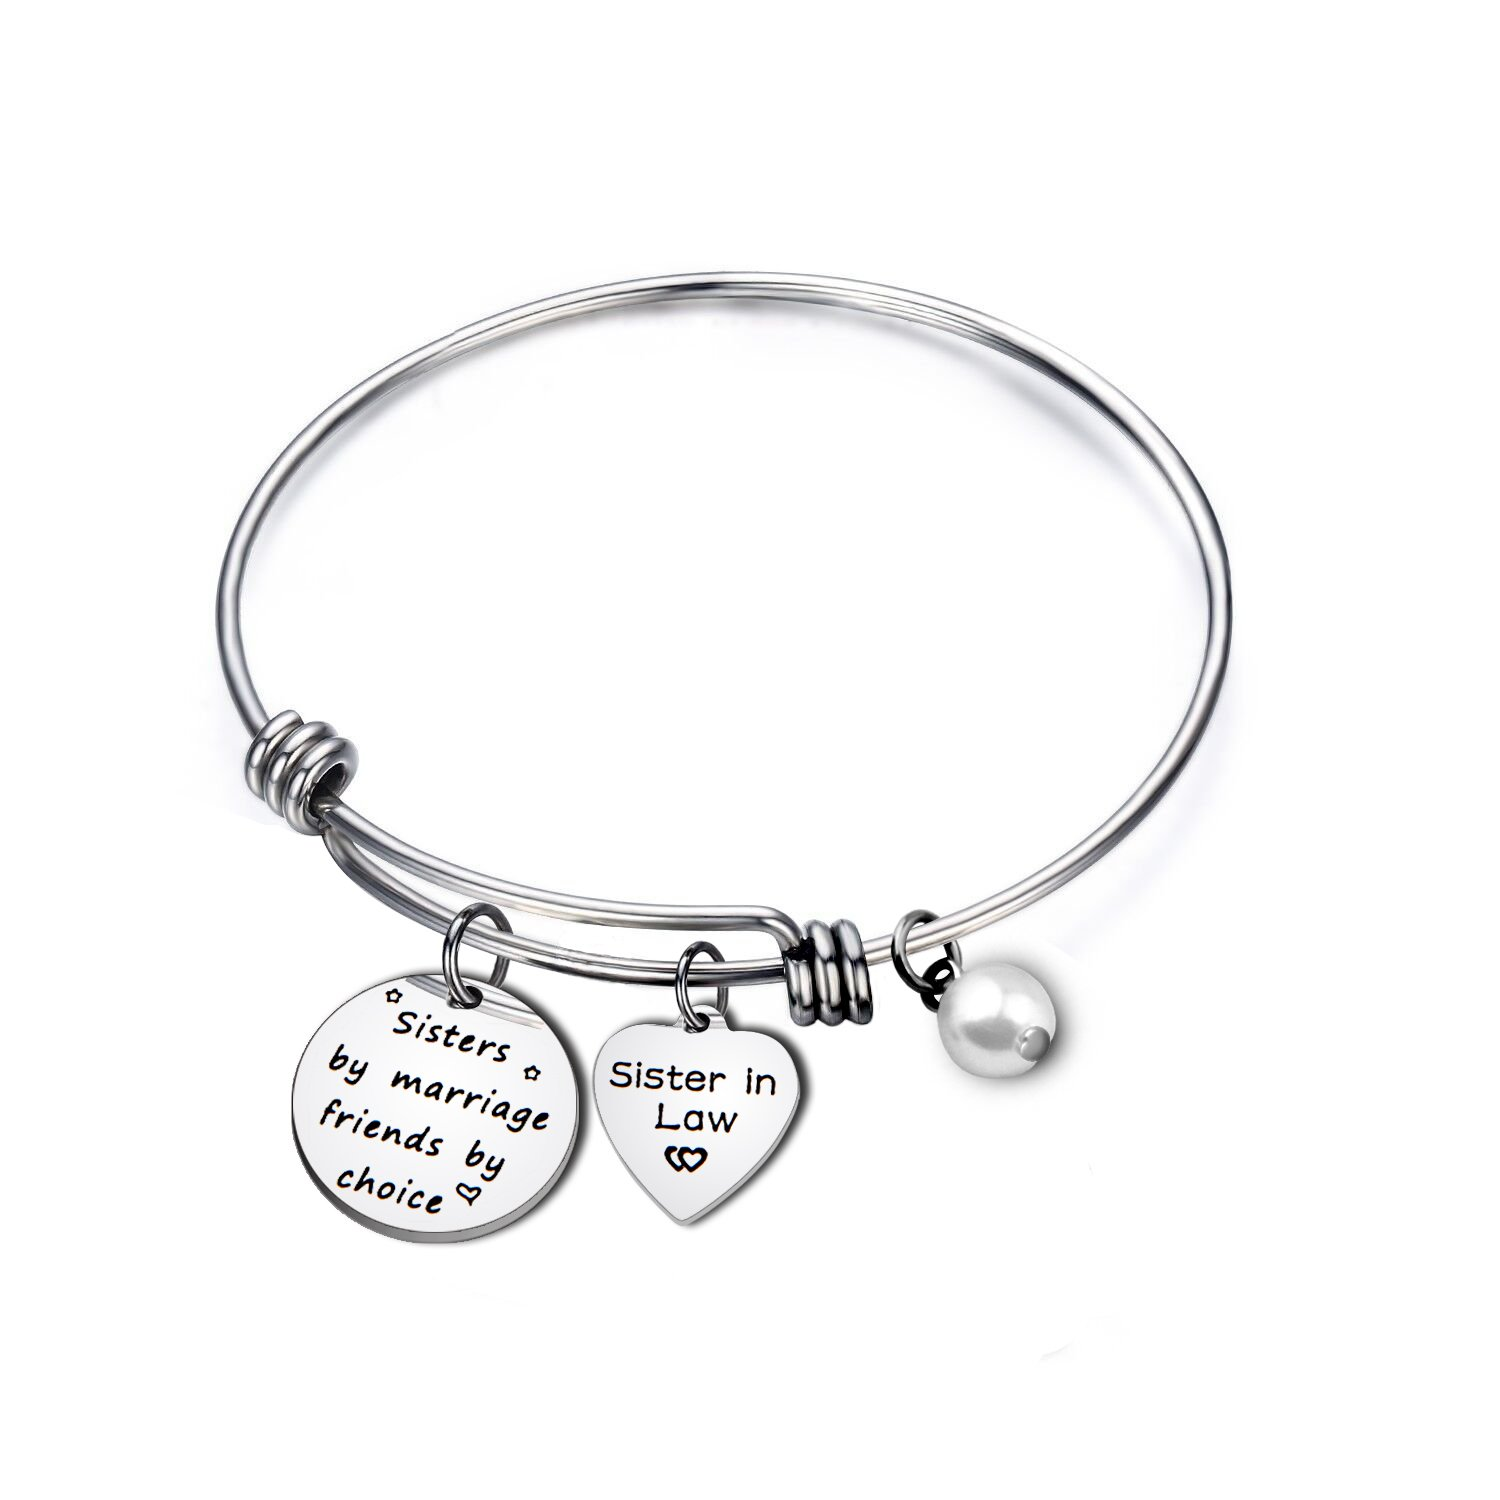 ENSIANTH Sister In Law Gift Sisters by Marriage Friends by Choice Bangle Bracelet Maid of Honor Gift,Best Friend Gift,Wedding Jewelry (Sister bracelet)